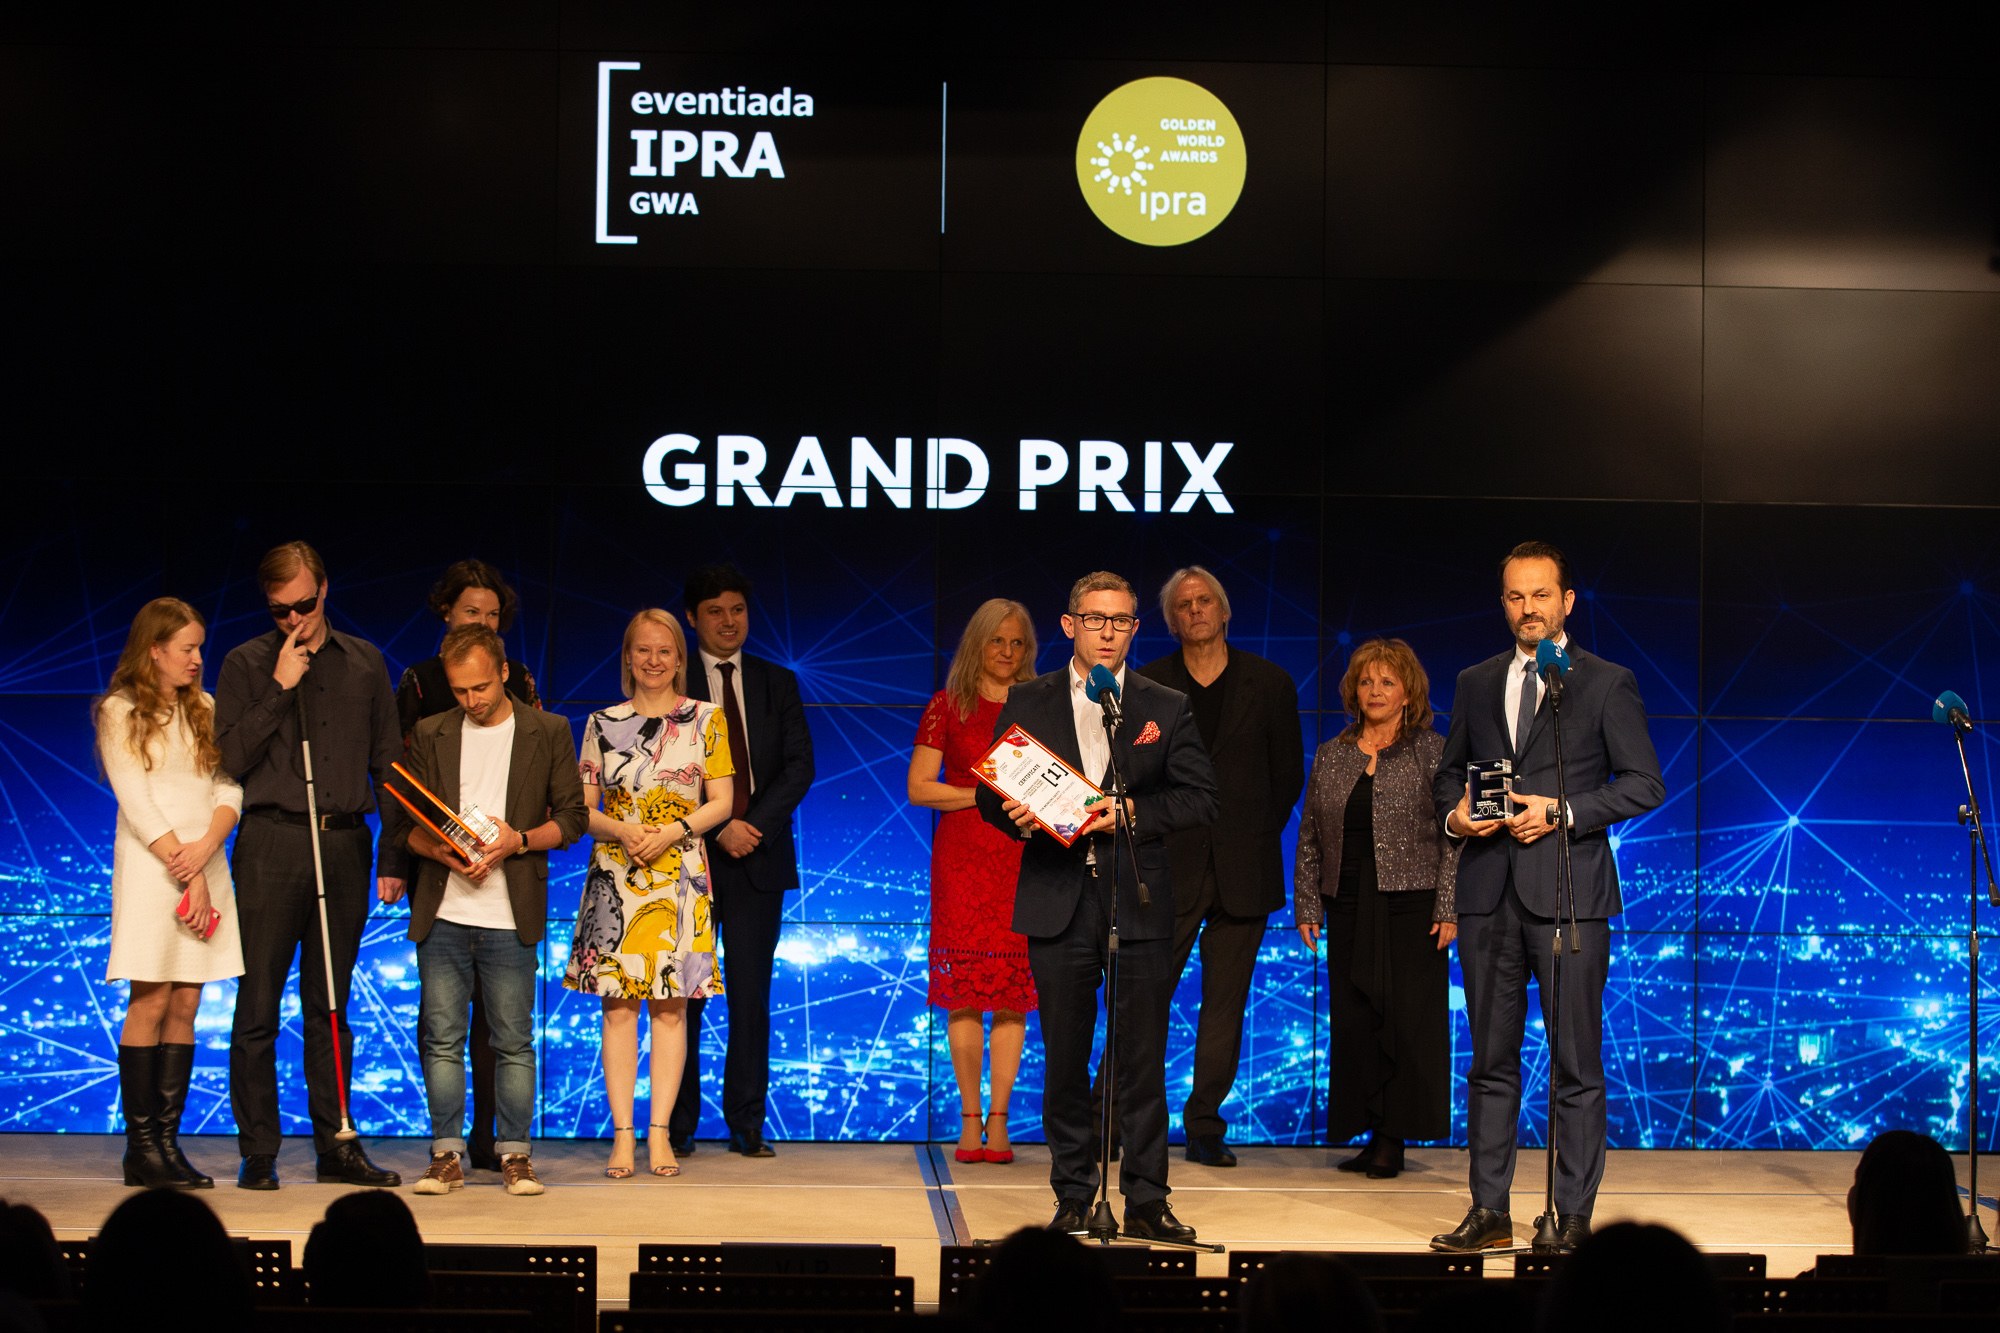 """Little rescuers"" with Grand Prix at the Eventiada IPRA Golden Awards"